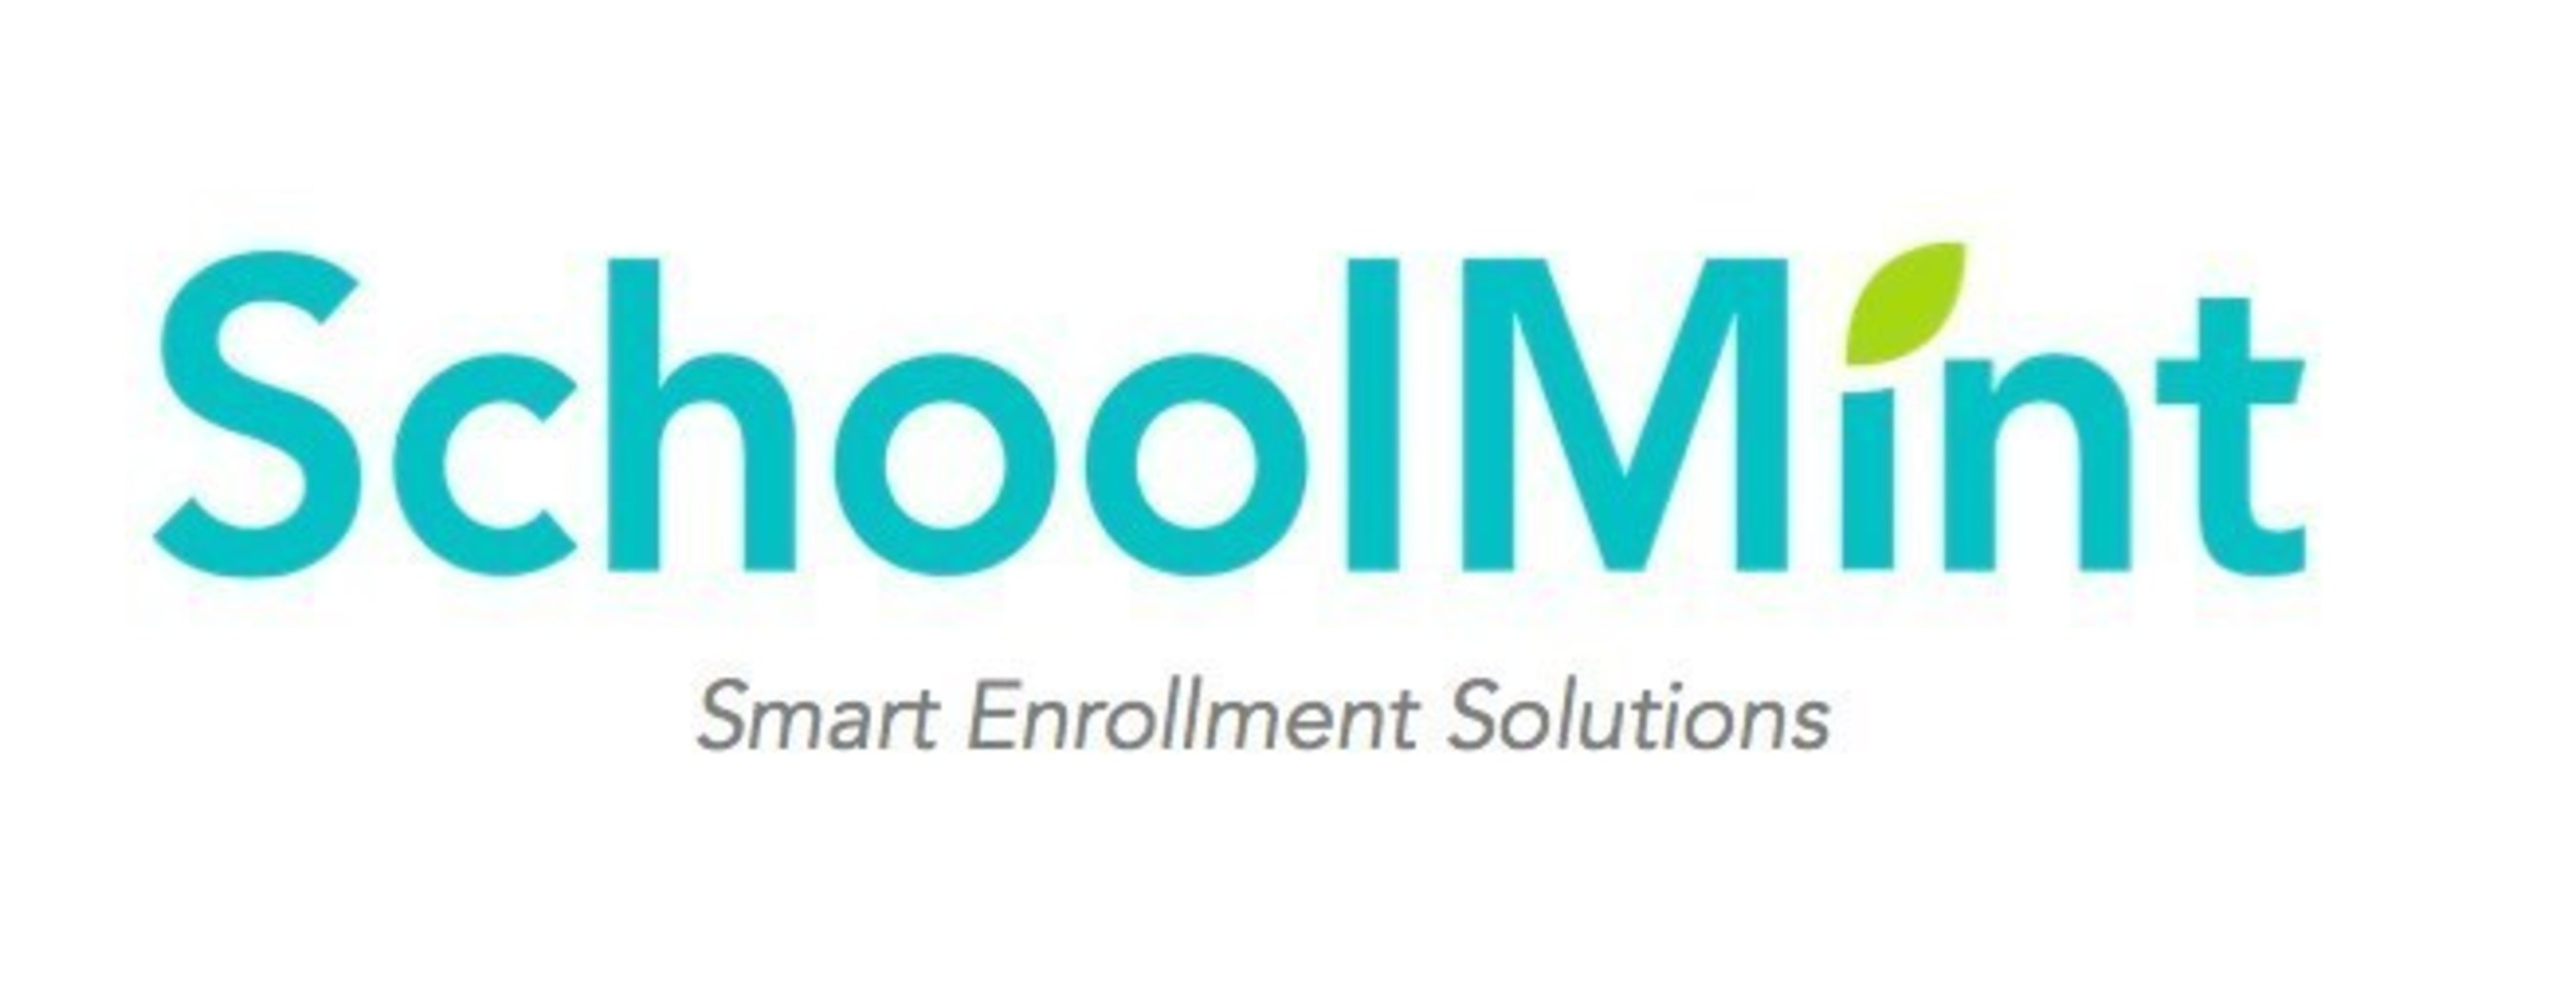 Center Grove Community School District Selects SchoolMint for Online Student Registration, Improved Efficiency, and Seamless SIS Integration